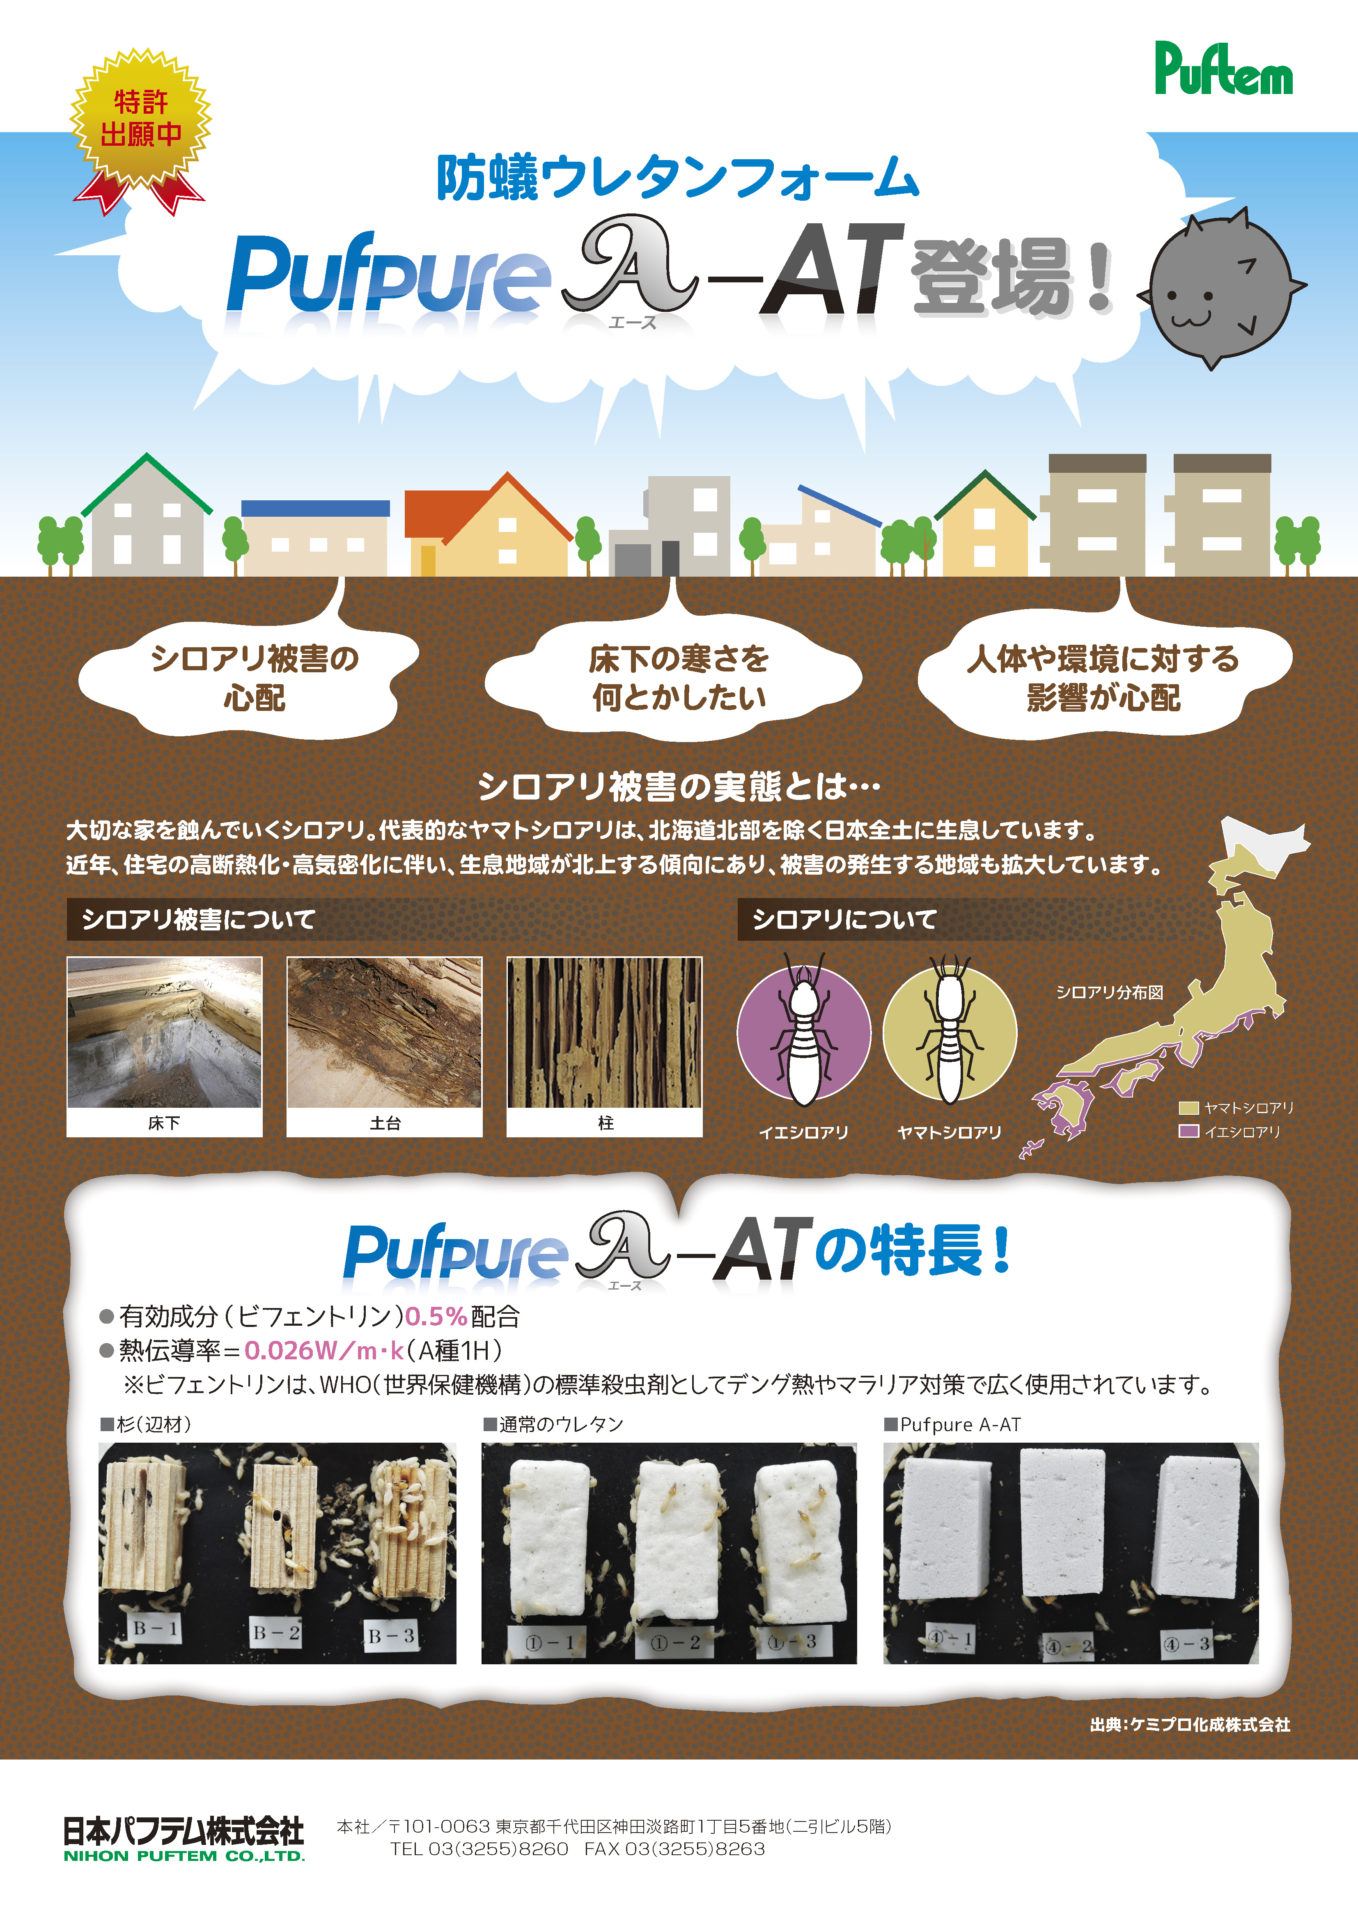 Thumbnail of http://「Purpure%20A(エース)-AT」防蟻ウレタンカタログ裏